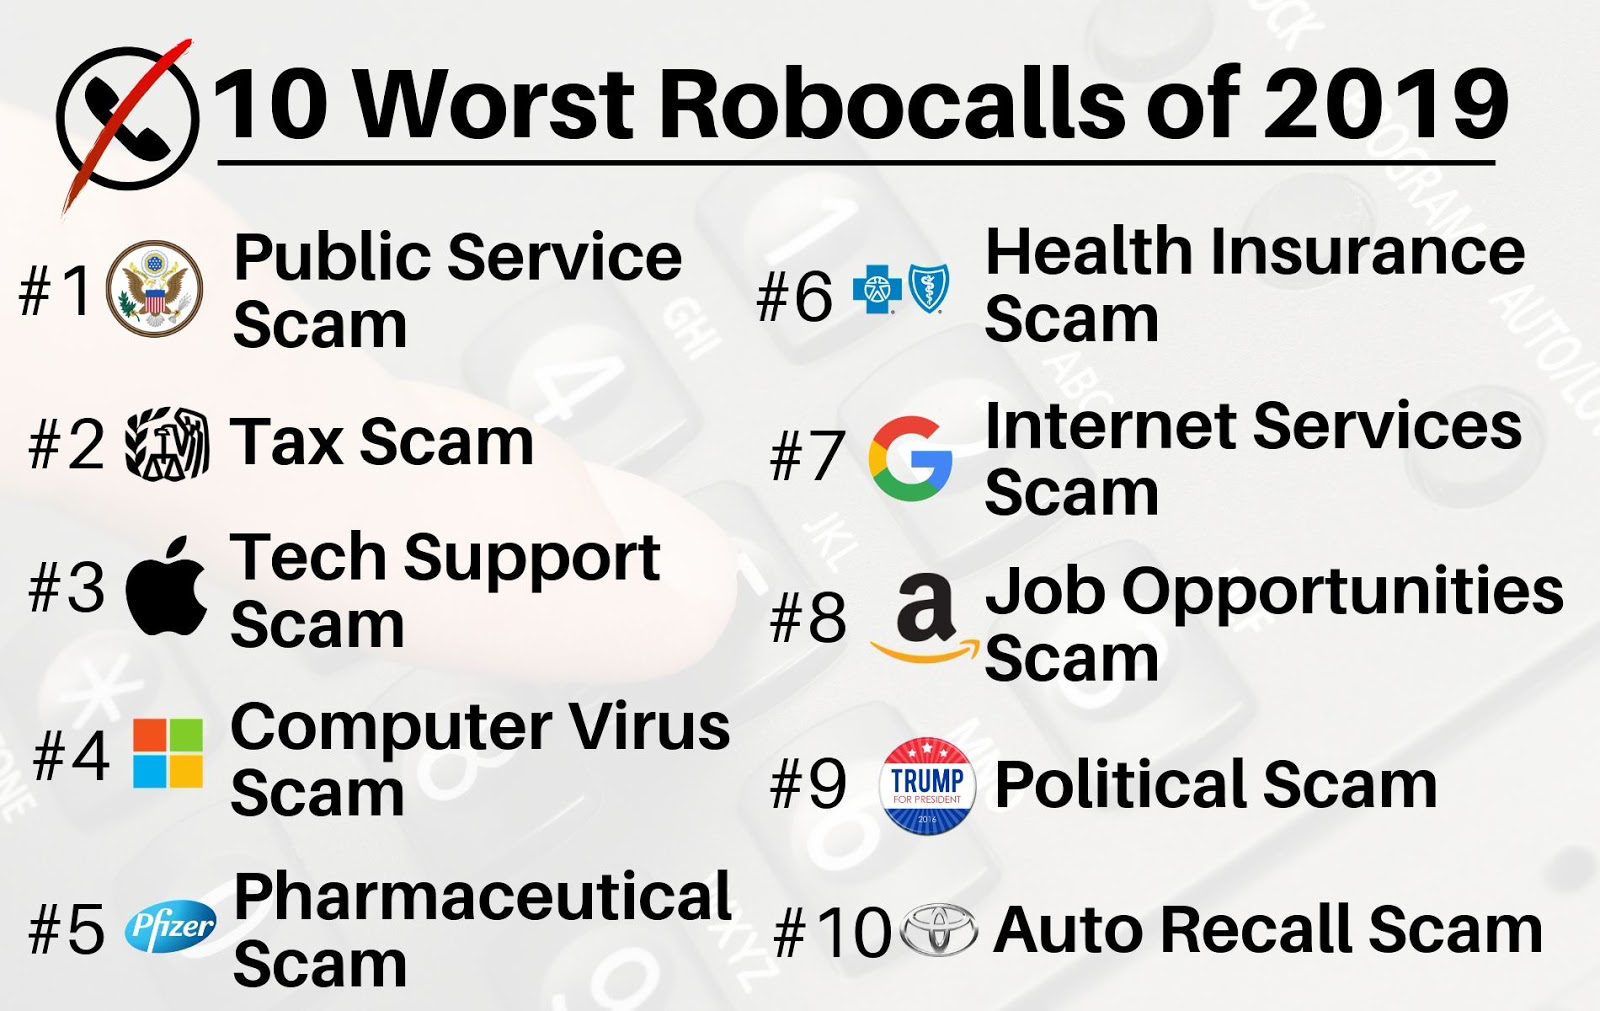 Worst Robocalls of 2019